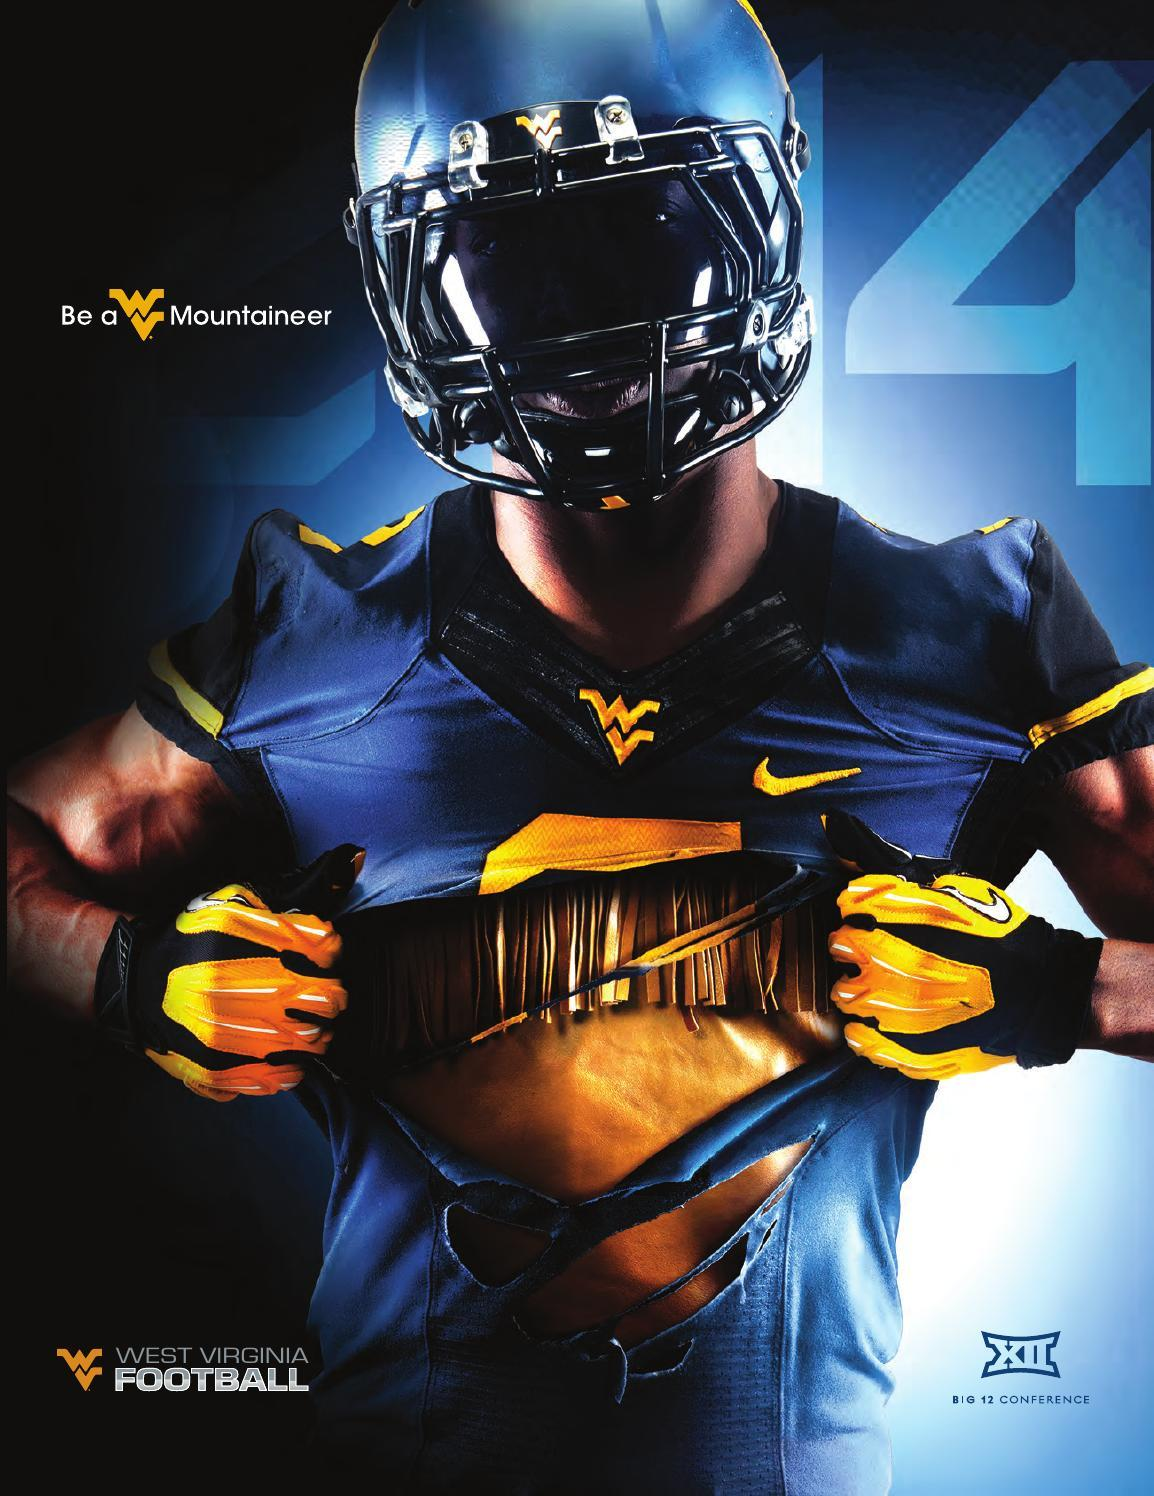 2014 West Virginia University Football Guide by Joe Swan